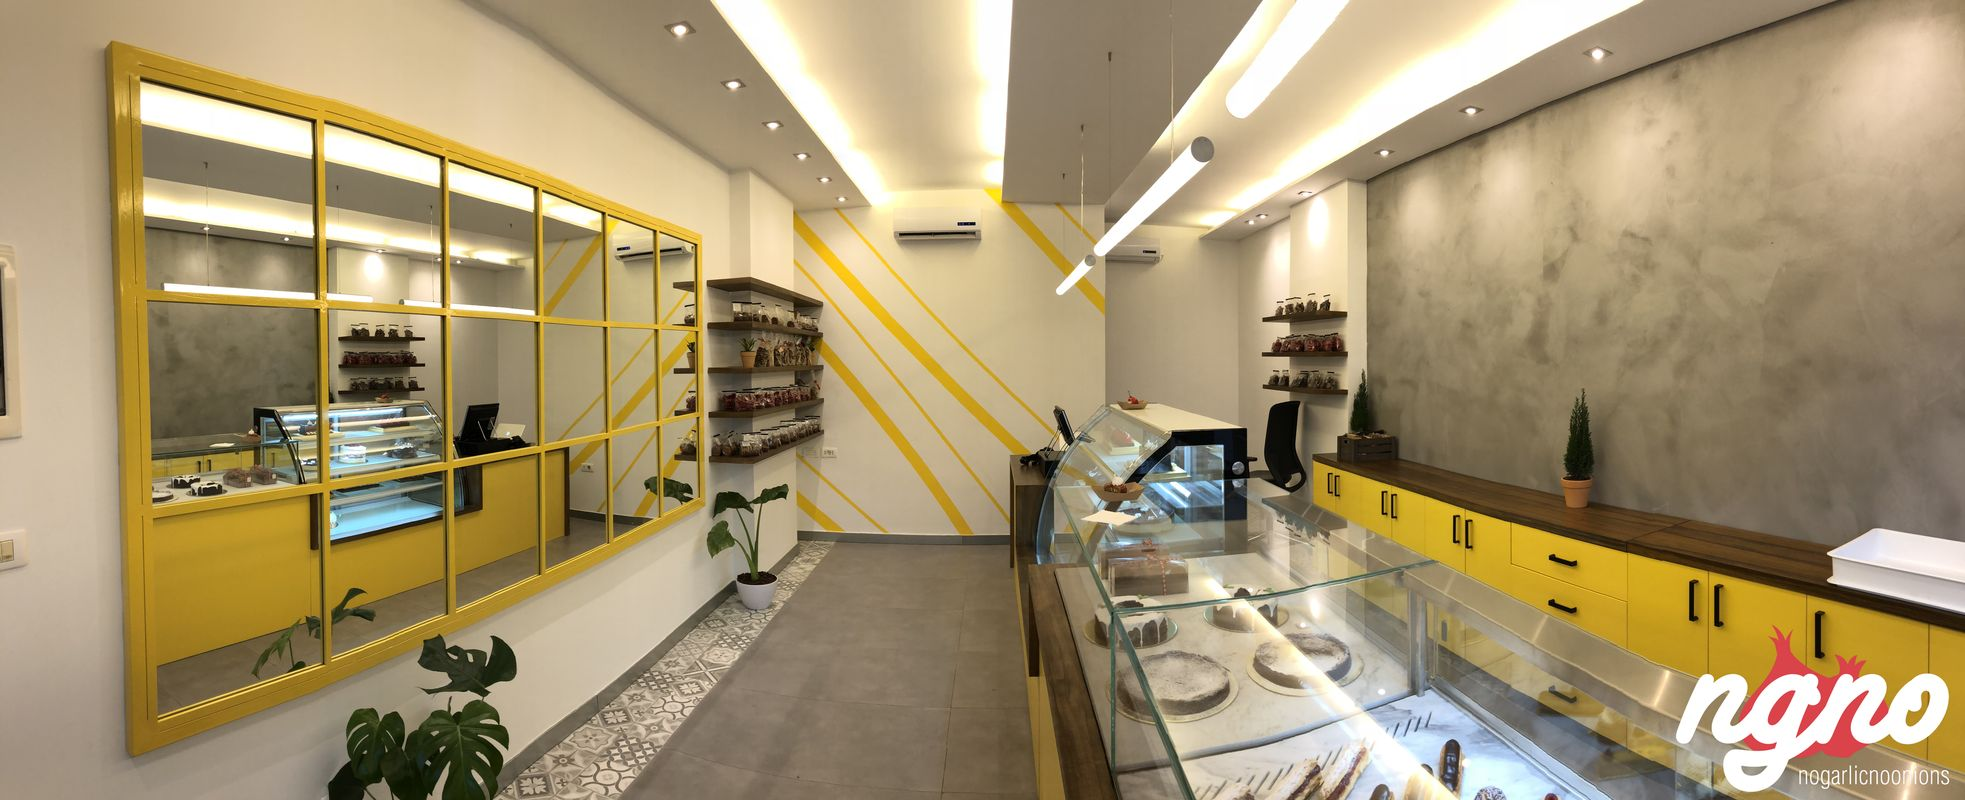 whisk-pastry-shop-lebanon82017-12-20-05-55-22